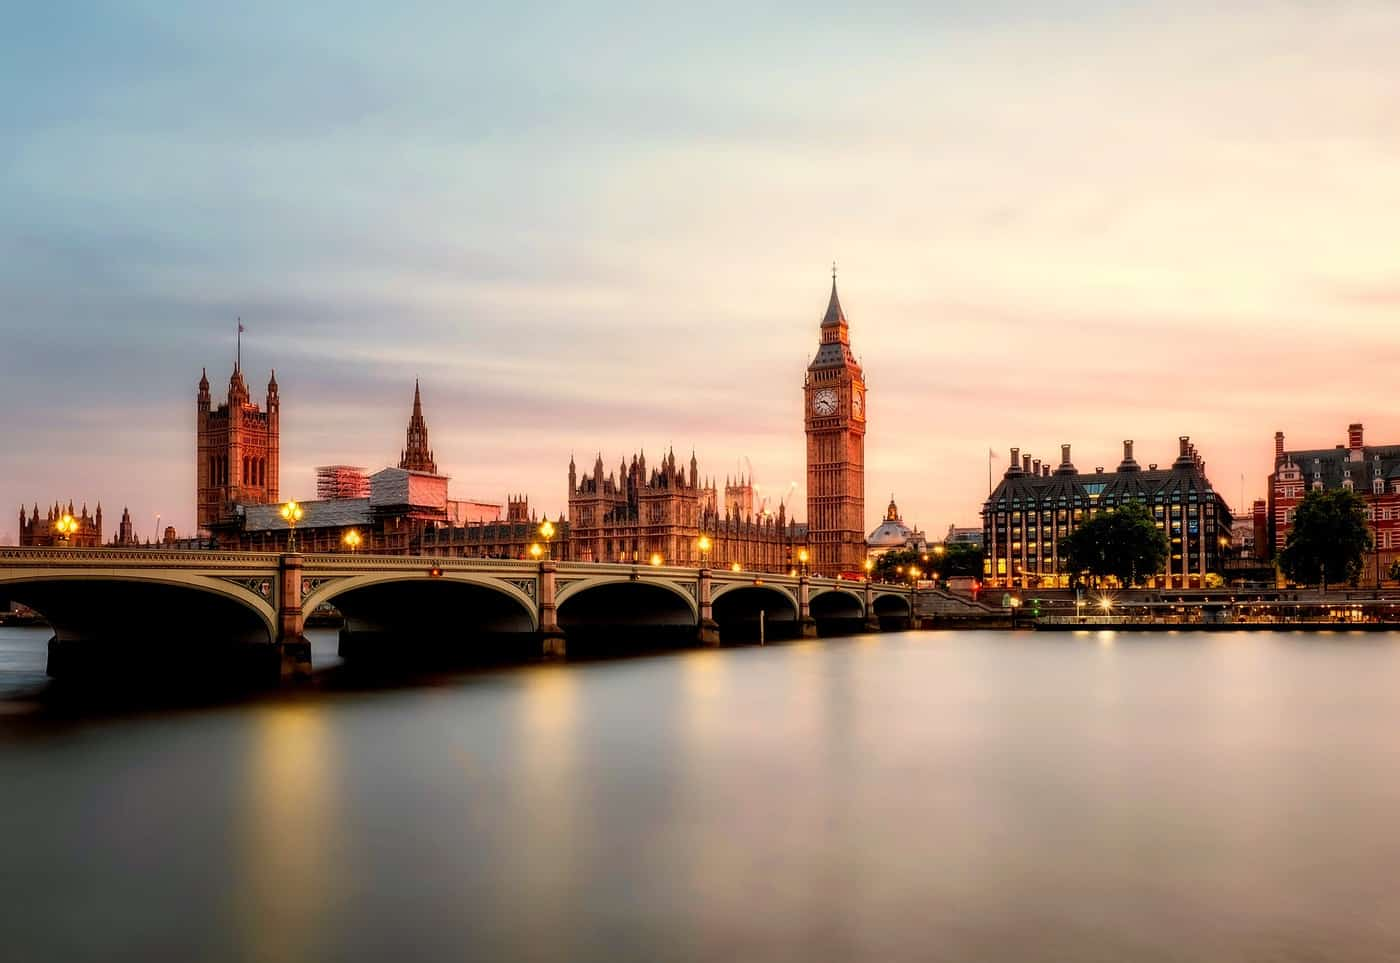 The Thames River and Houses of Parliament and Big Ben in London